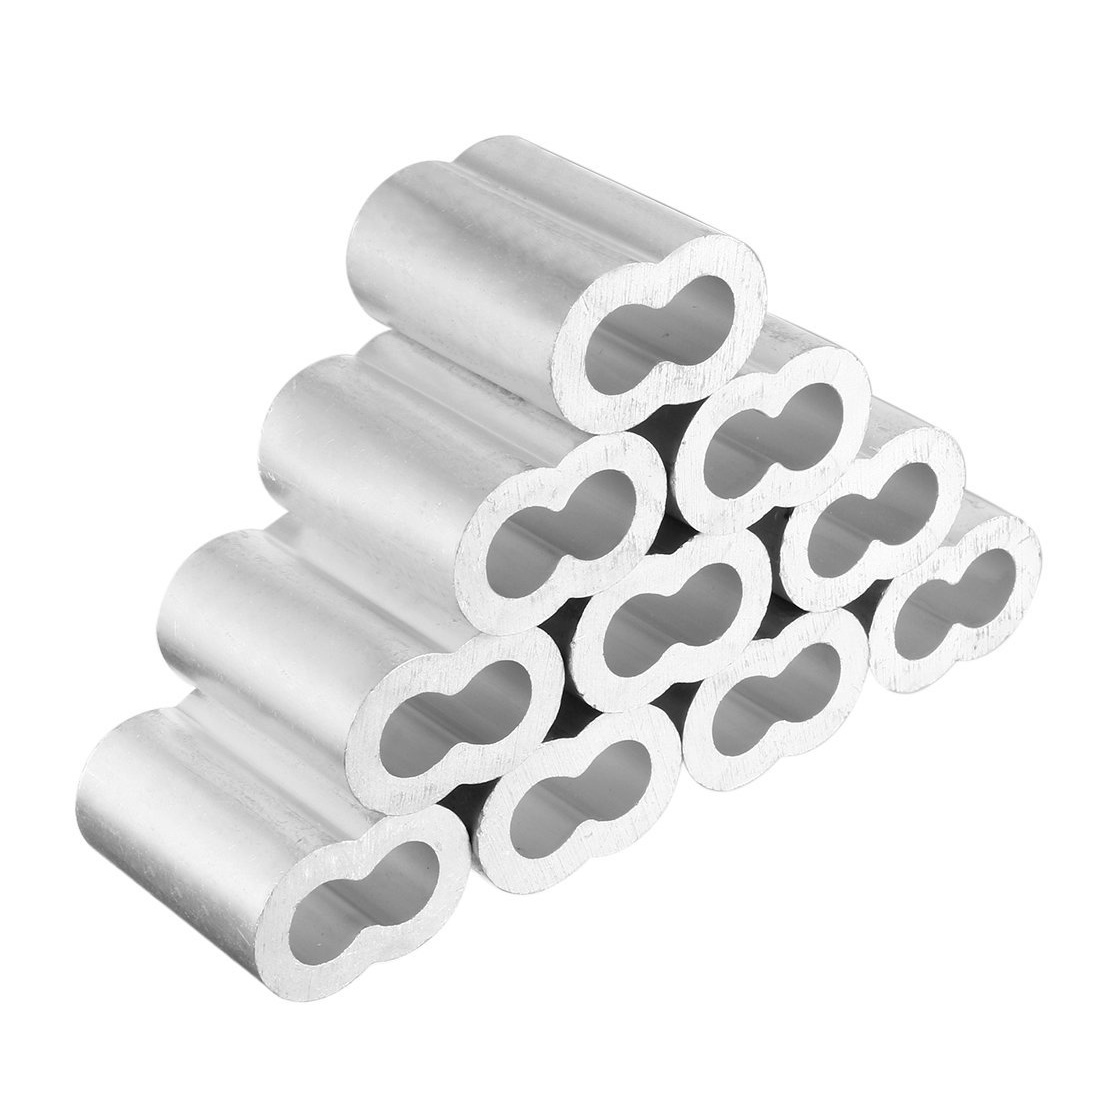 10pcs 1/2 inch (12mm) Diameter Wire Rope Aluminum Sleeves Clip ...